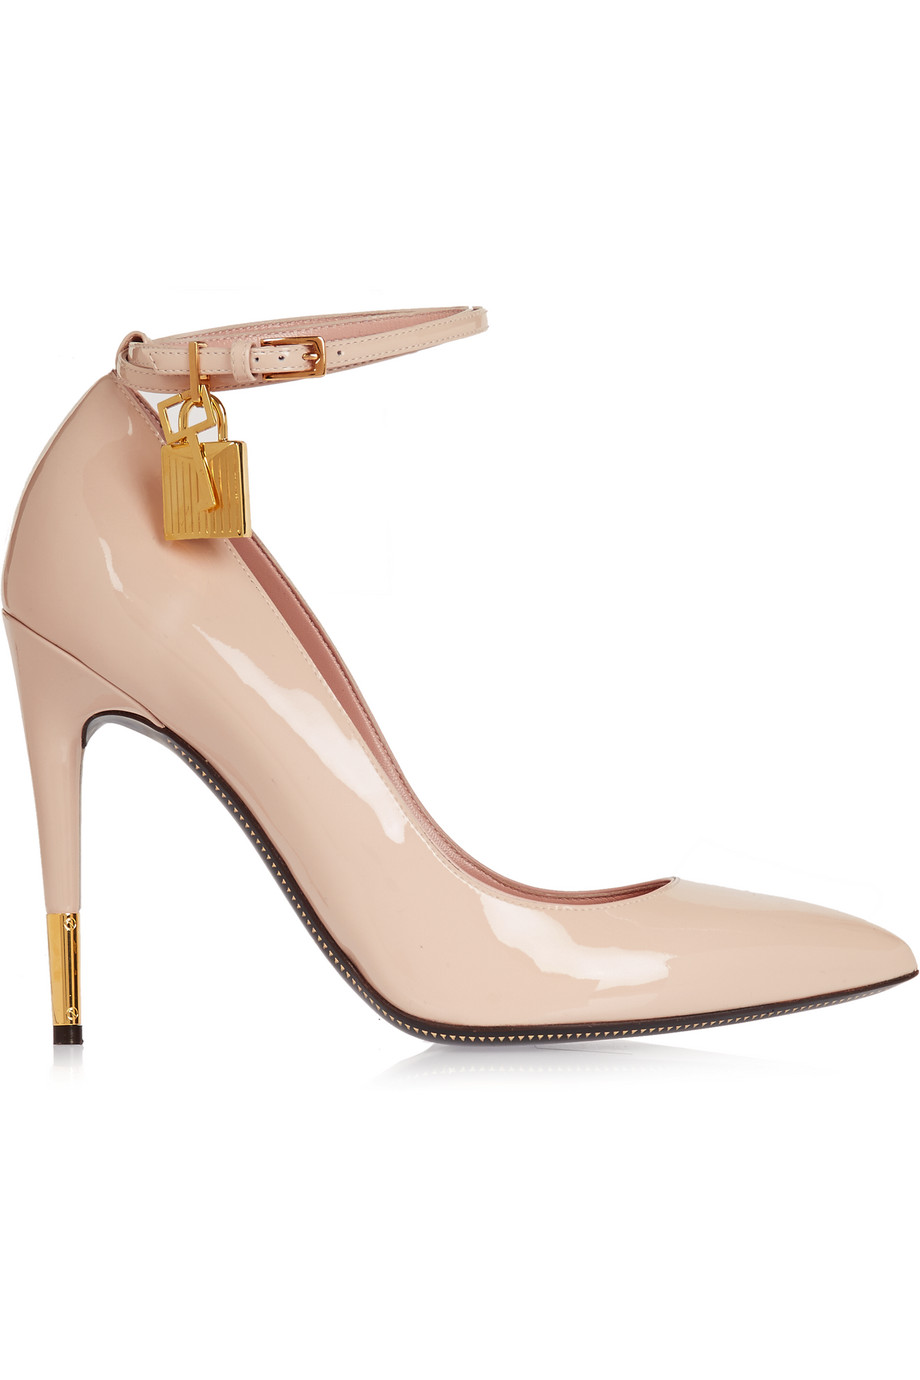 Patent-Leather Pumps, Beige, Women's US Size: 7.5, Size: 38